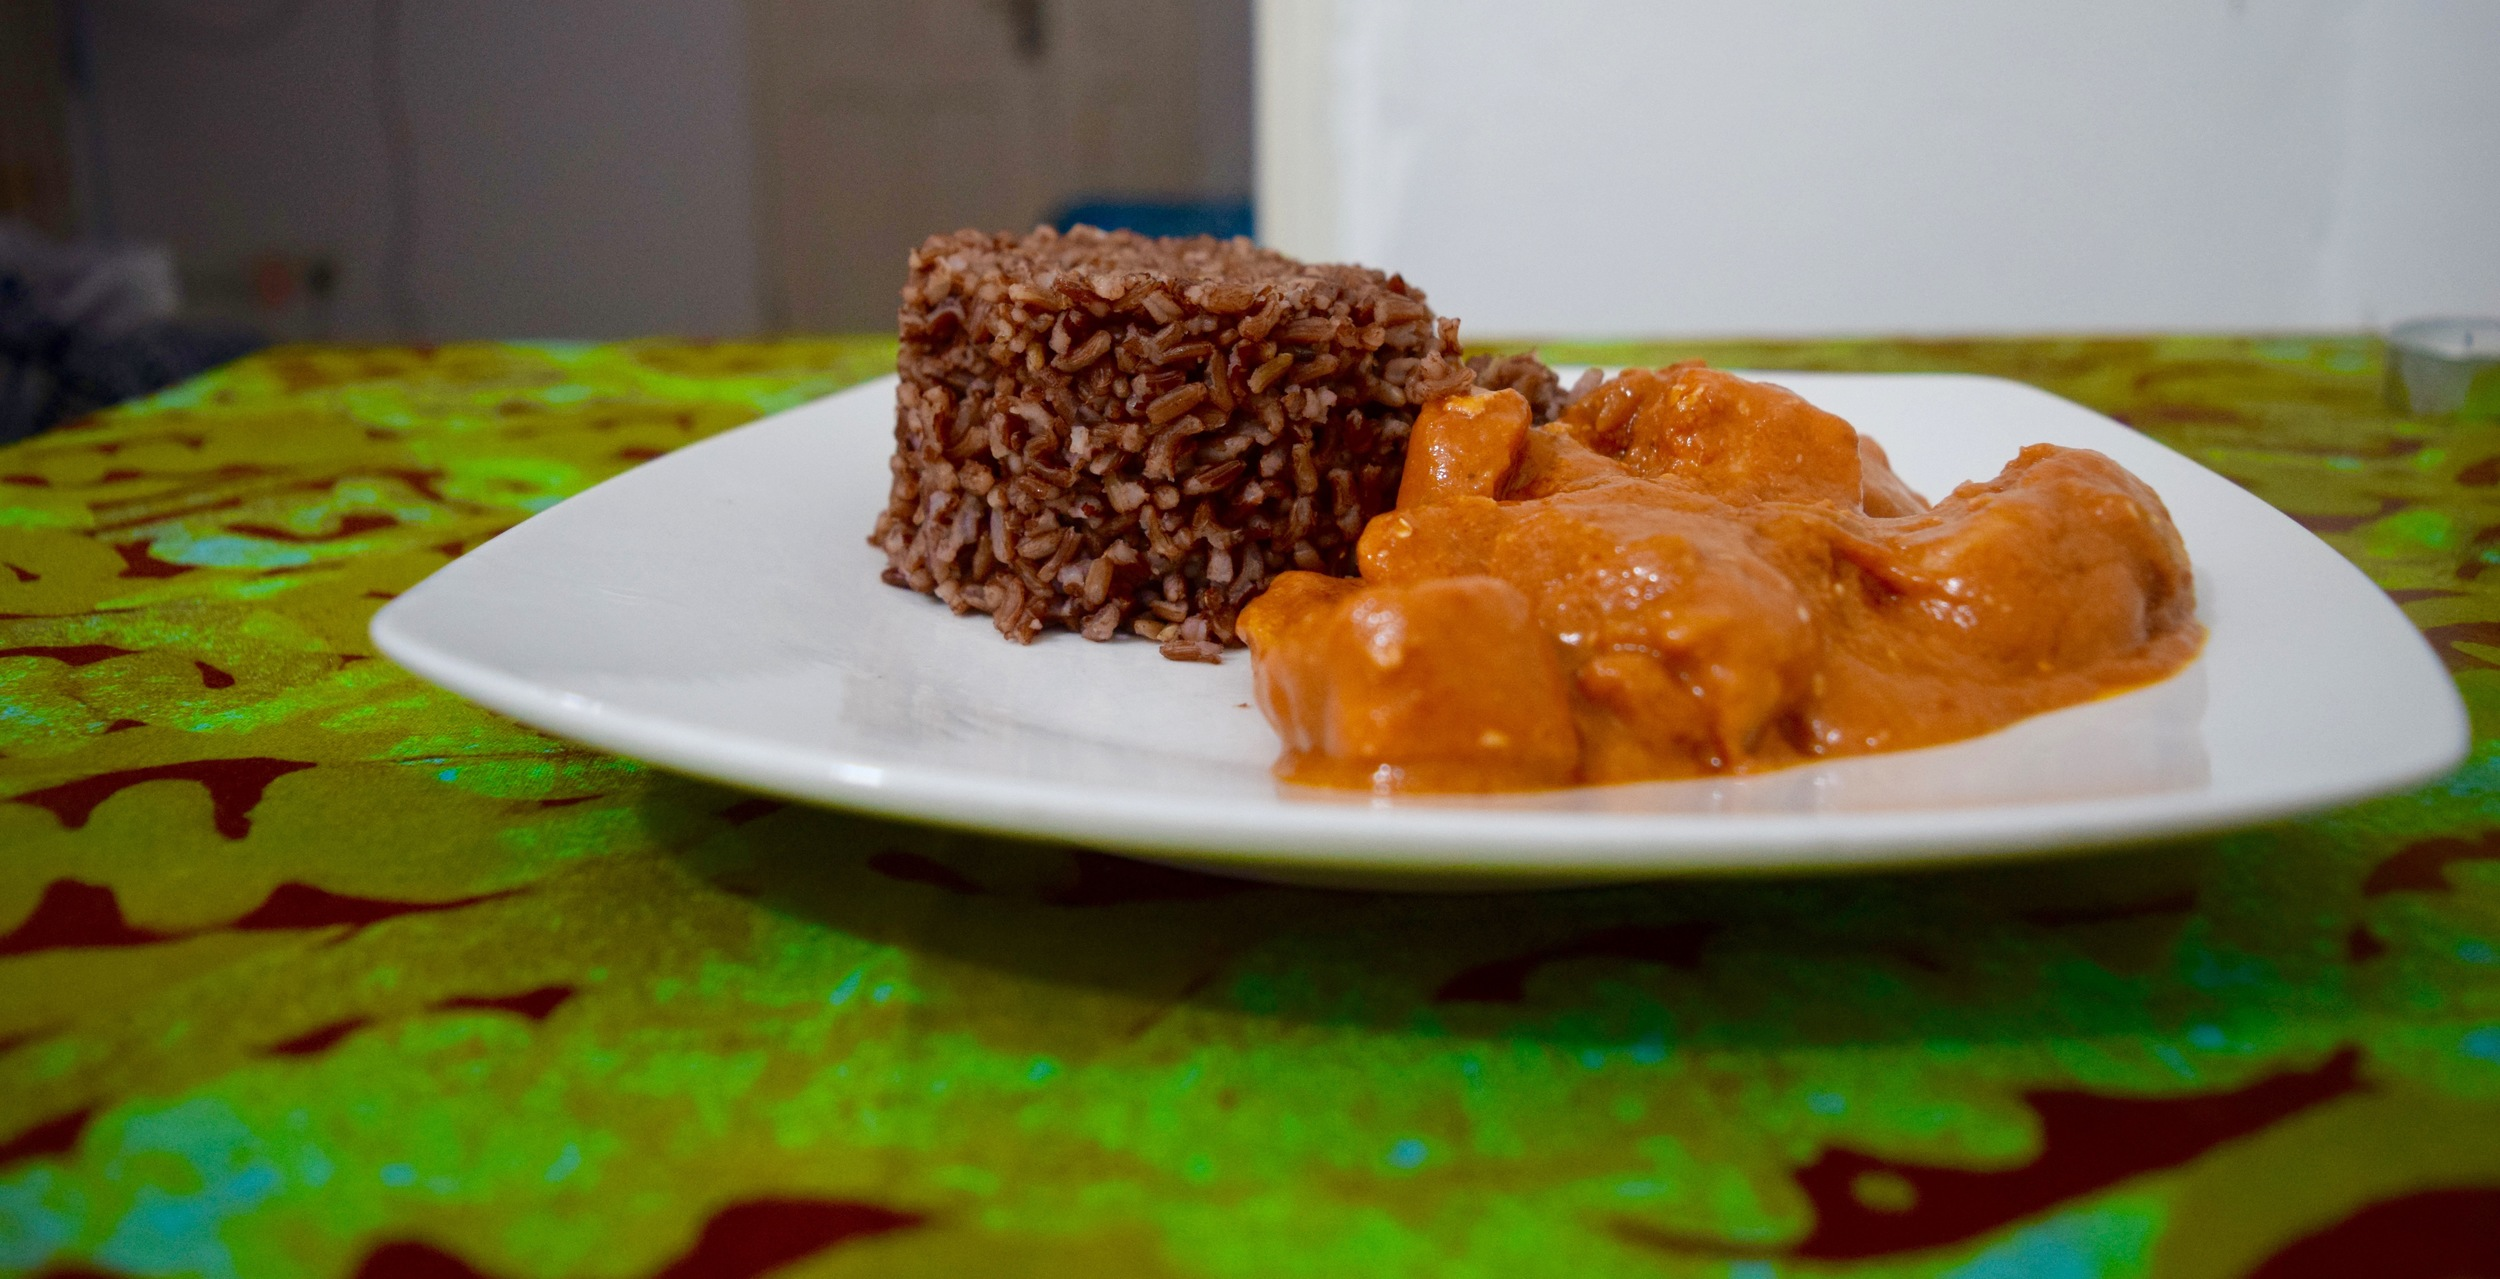 Domoda and brown rice.